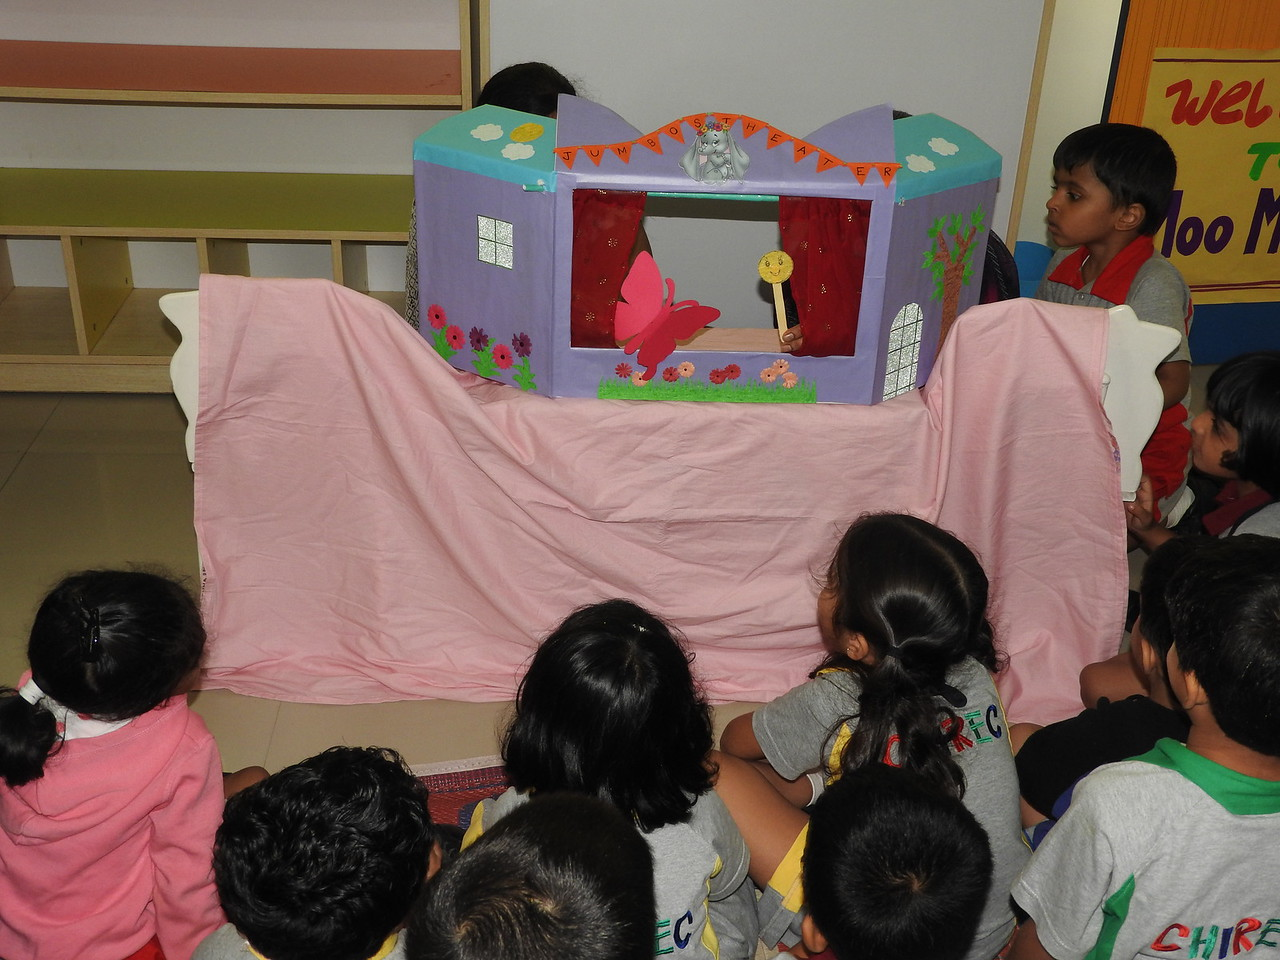 PUPPET SHOW-THE HUNGRY CATERPILLAR